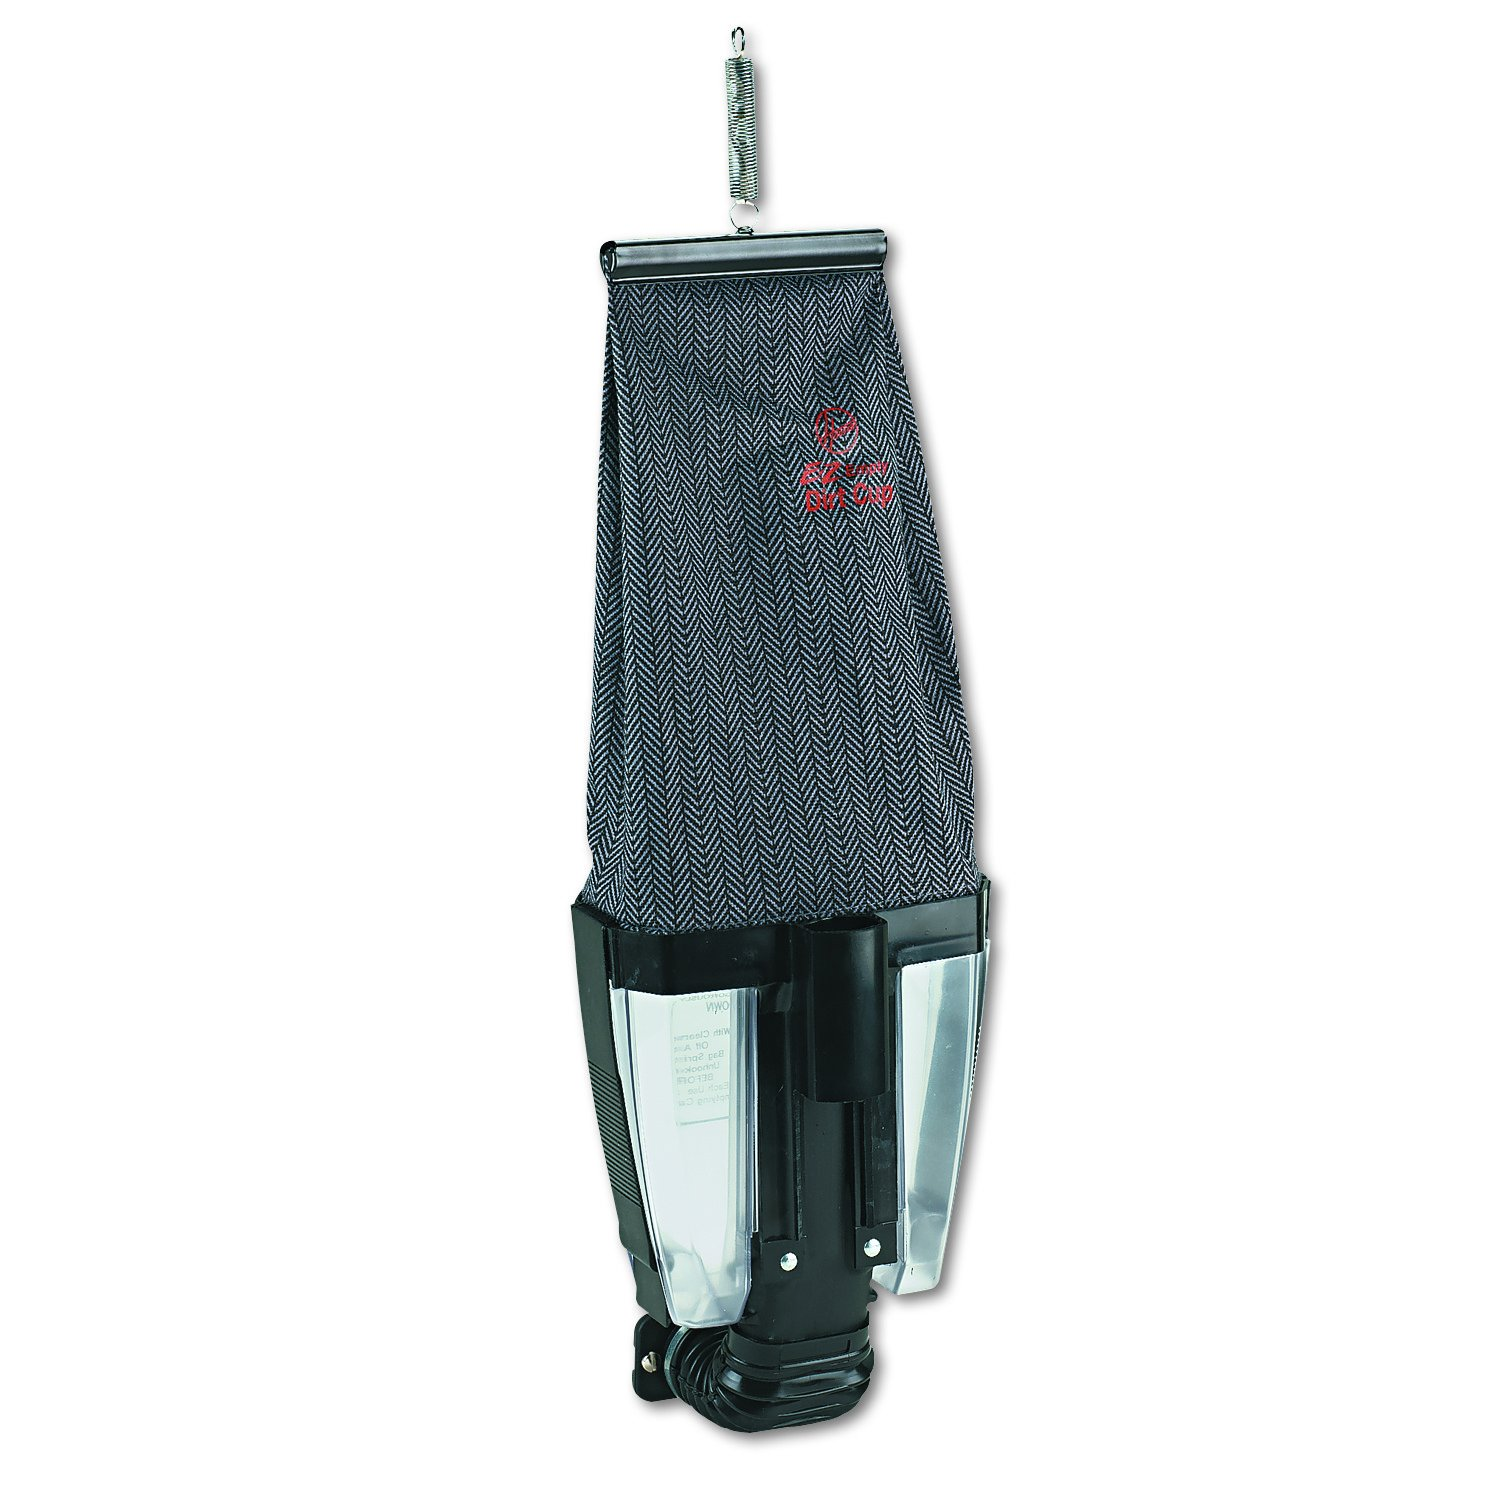 Hoover Commercial 58642015 E-Z Dump Dirt Cup Collection System for Conquest C1800 Vacuum by Hoover